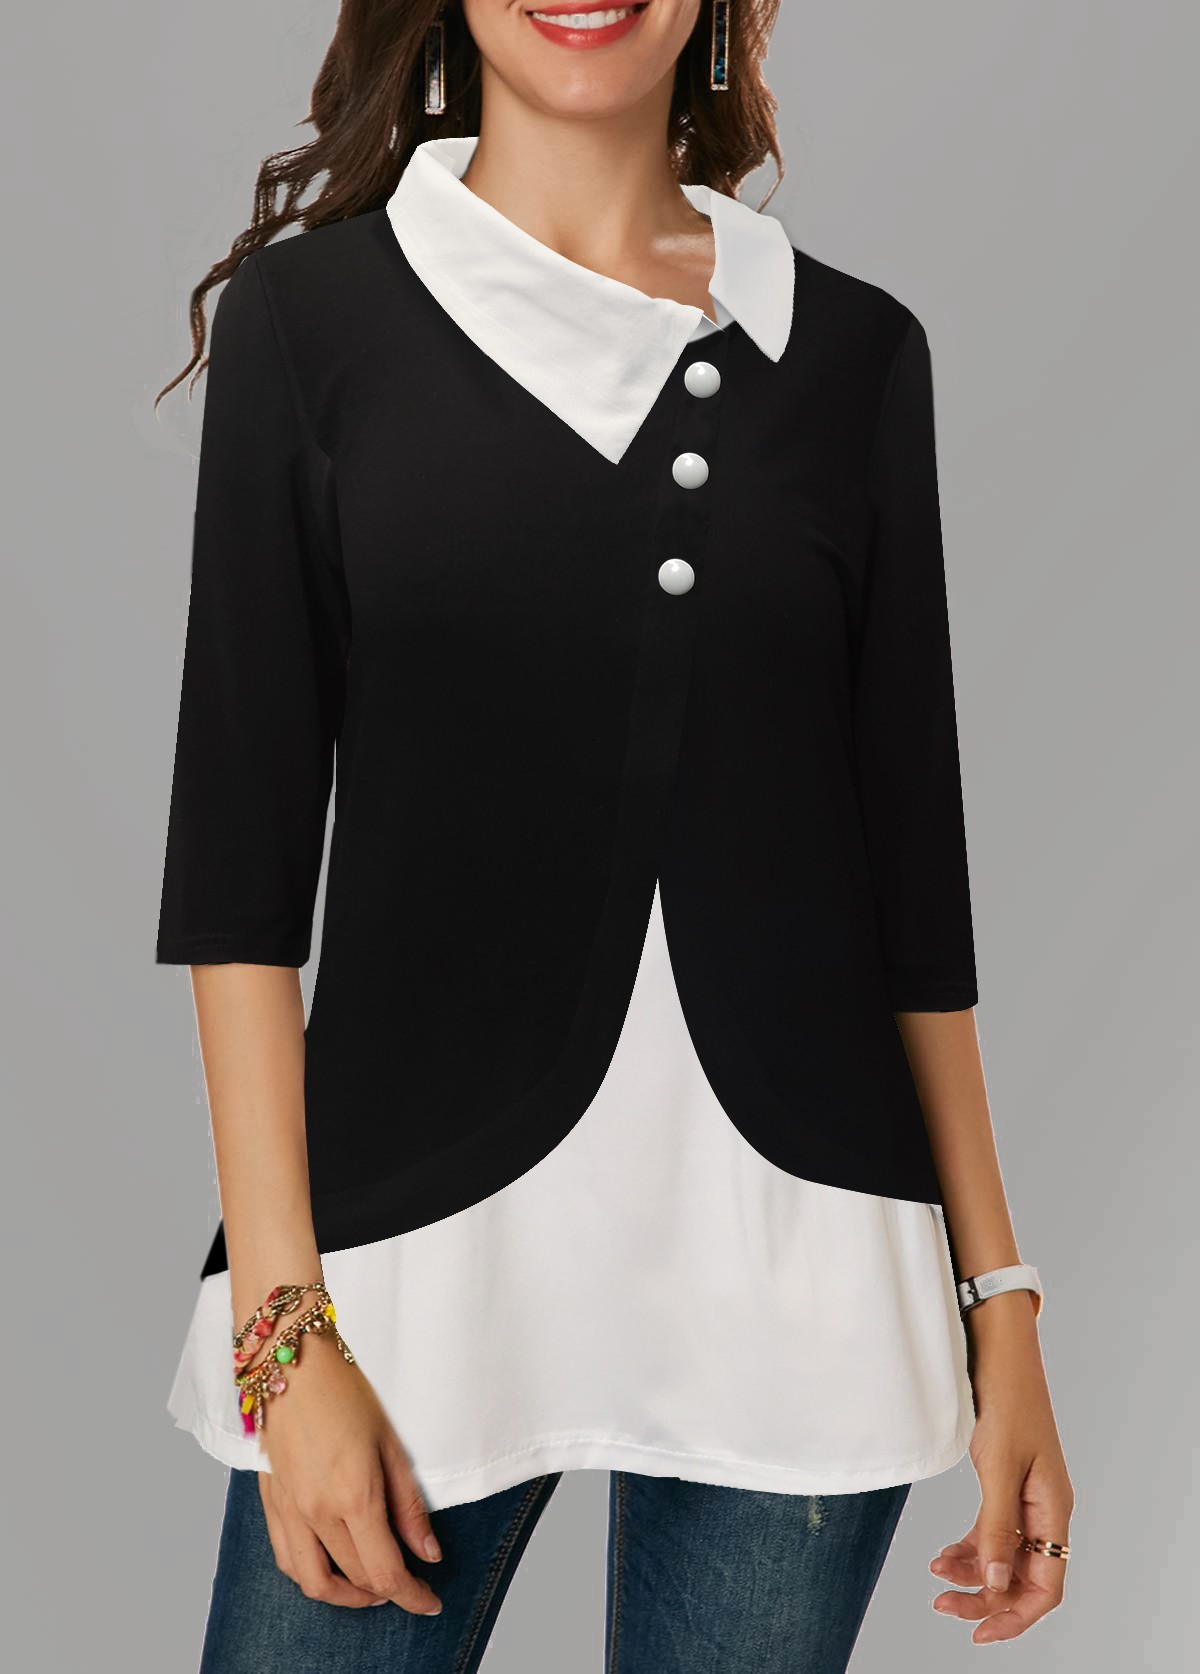 Asymmetric Neckline Button Detail Three Quarter Sleeve Blouse